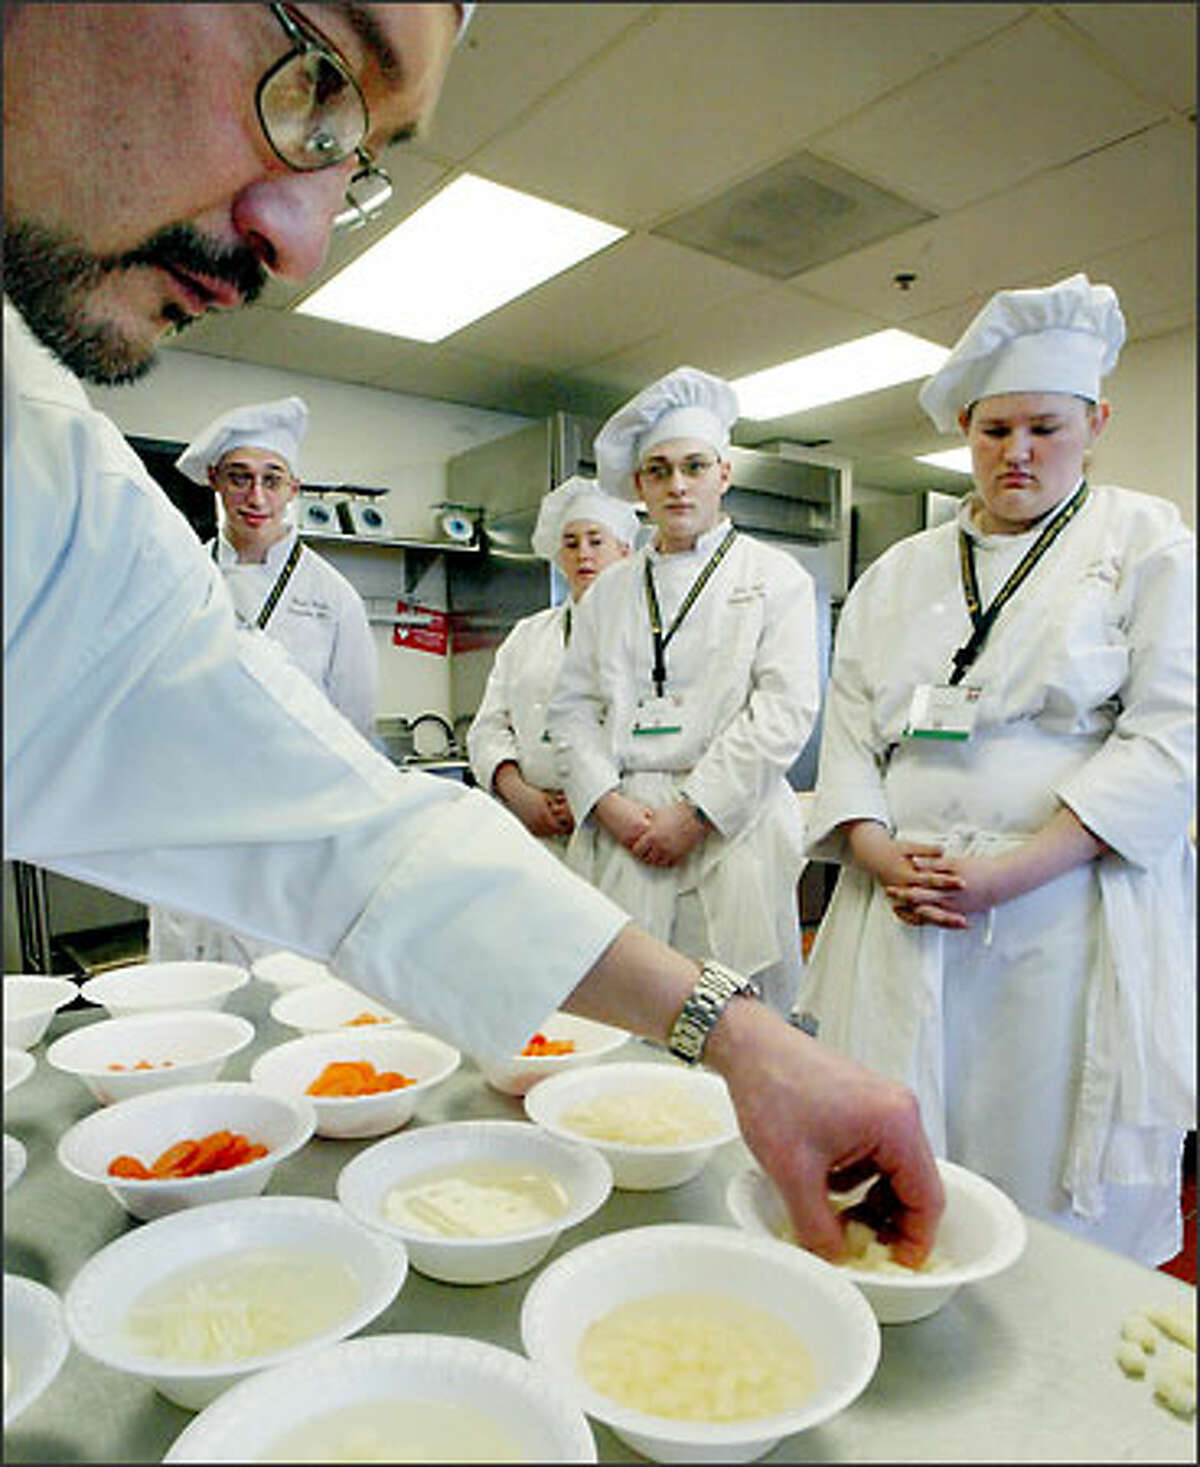 Enumclaw students (from left) Kevin Deane, Julianne Crane, Joshua Oster and Tara Ford watch as judge Gregg Shiosaki, a chef instructor at North Seattle Community College, critiques the quality and consistency of the vegetables the students cut in the knife skills portion of the Hospitality Invitational.